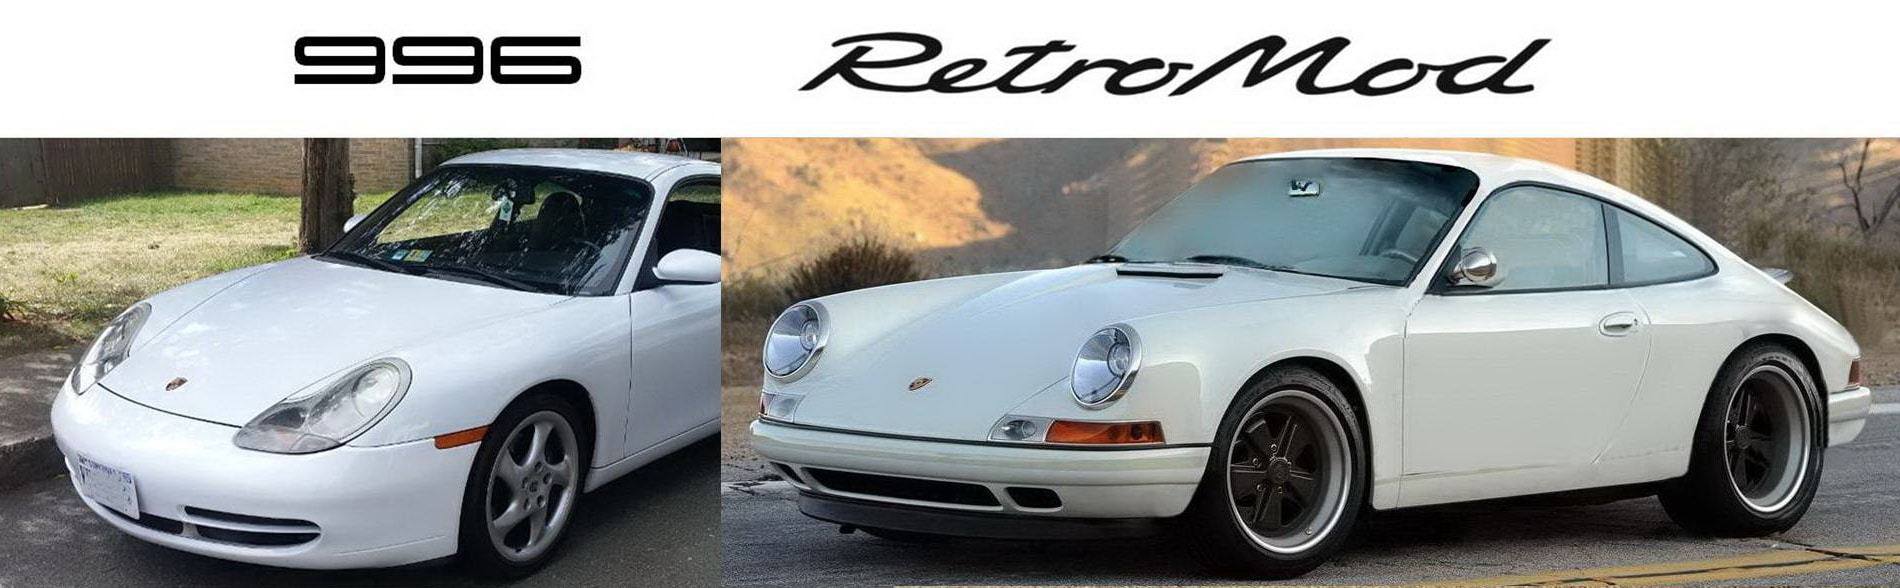 996 retromod side front banner